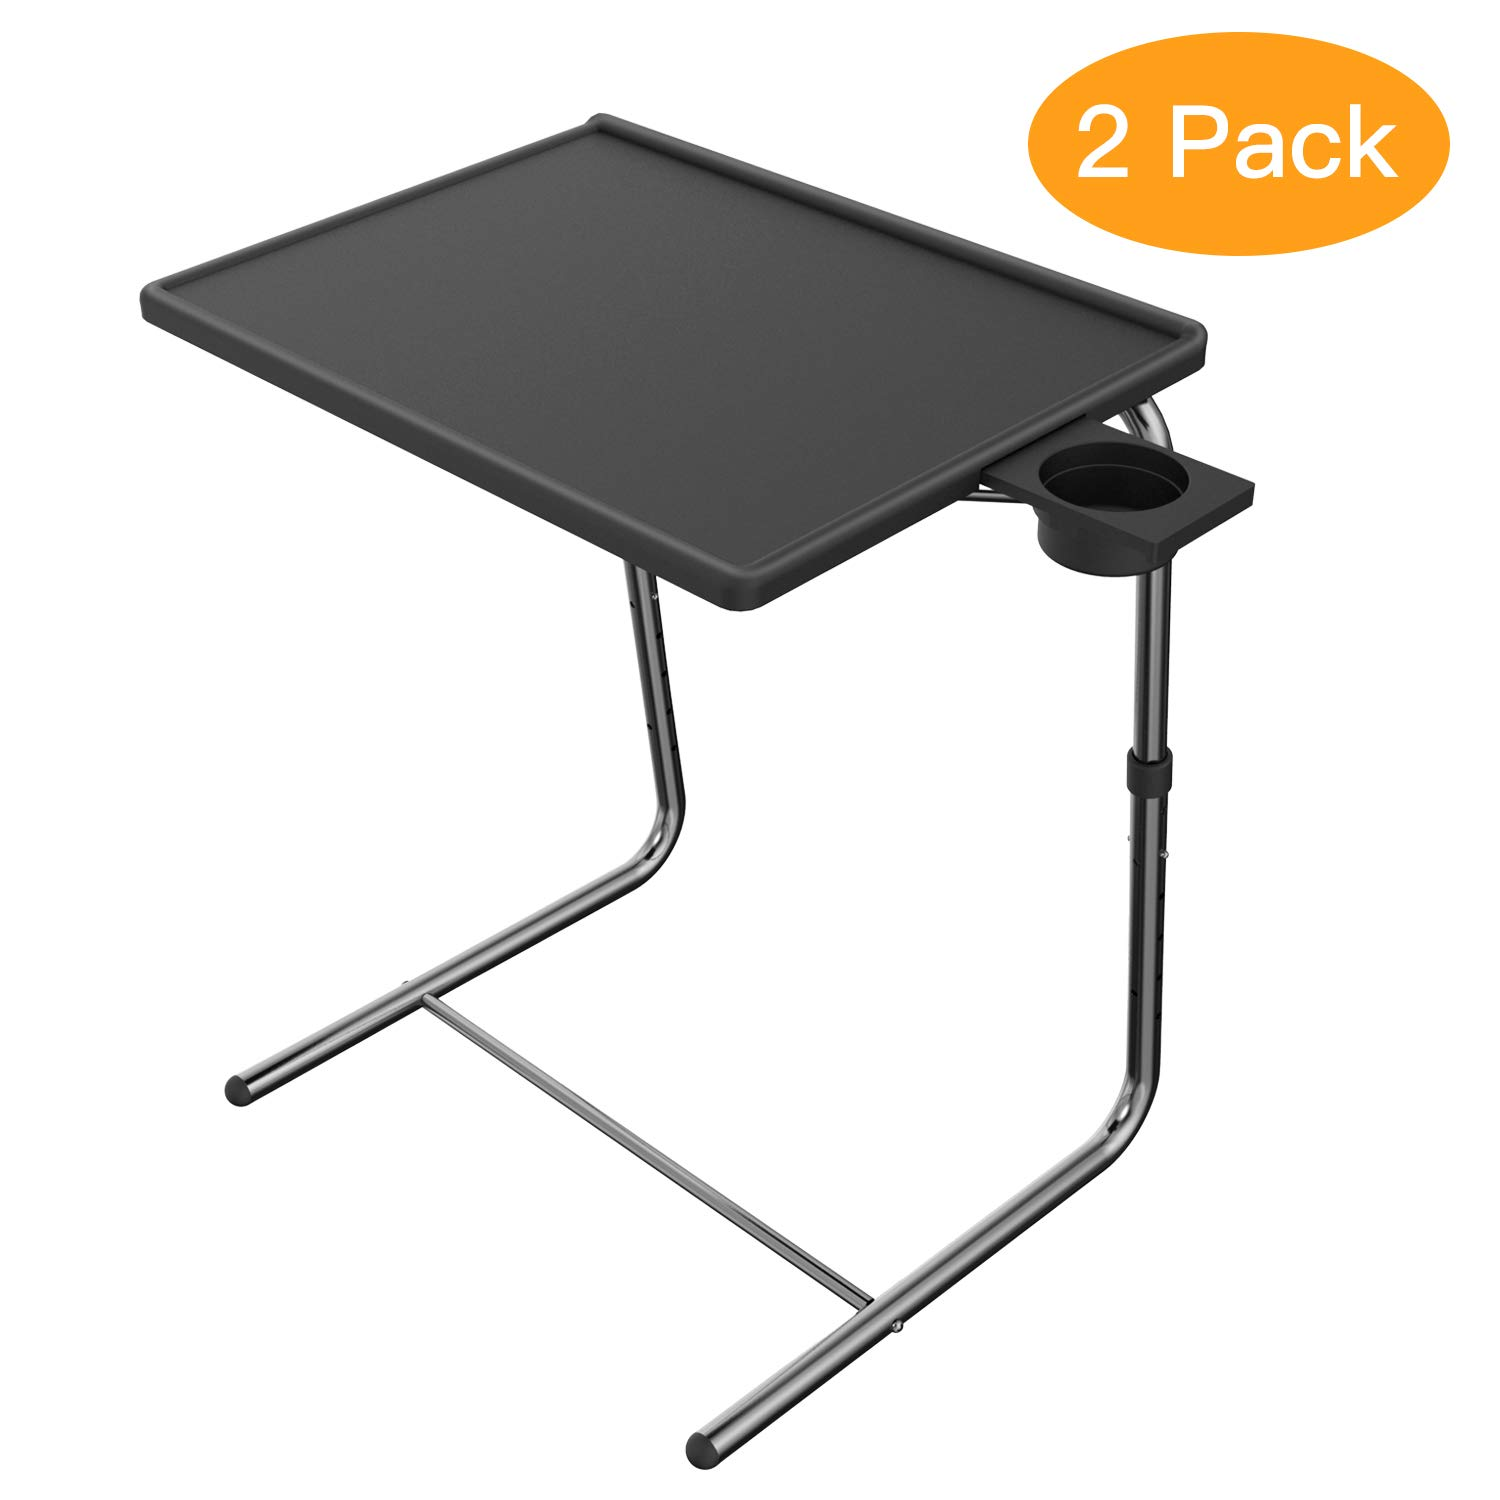 HUANUO HNTTK2-B Bed & Sofa, Laptop Table as TV Food, Work Tray with 6 Heights & 3 Tilt Angles Adjustable, Black